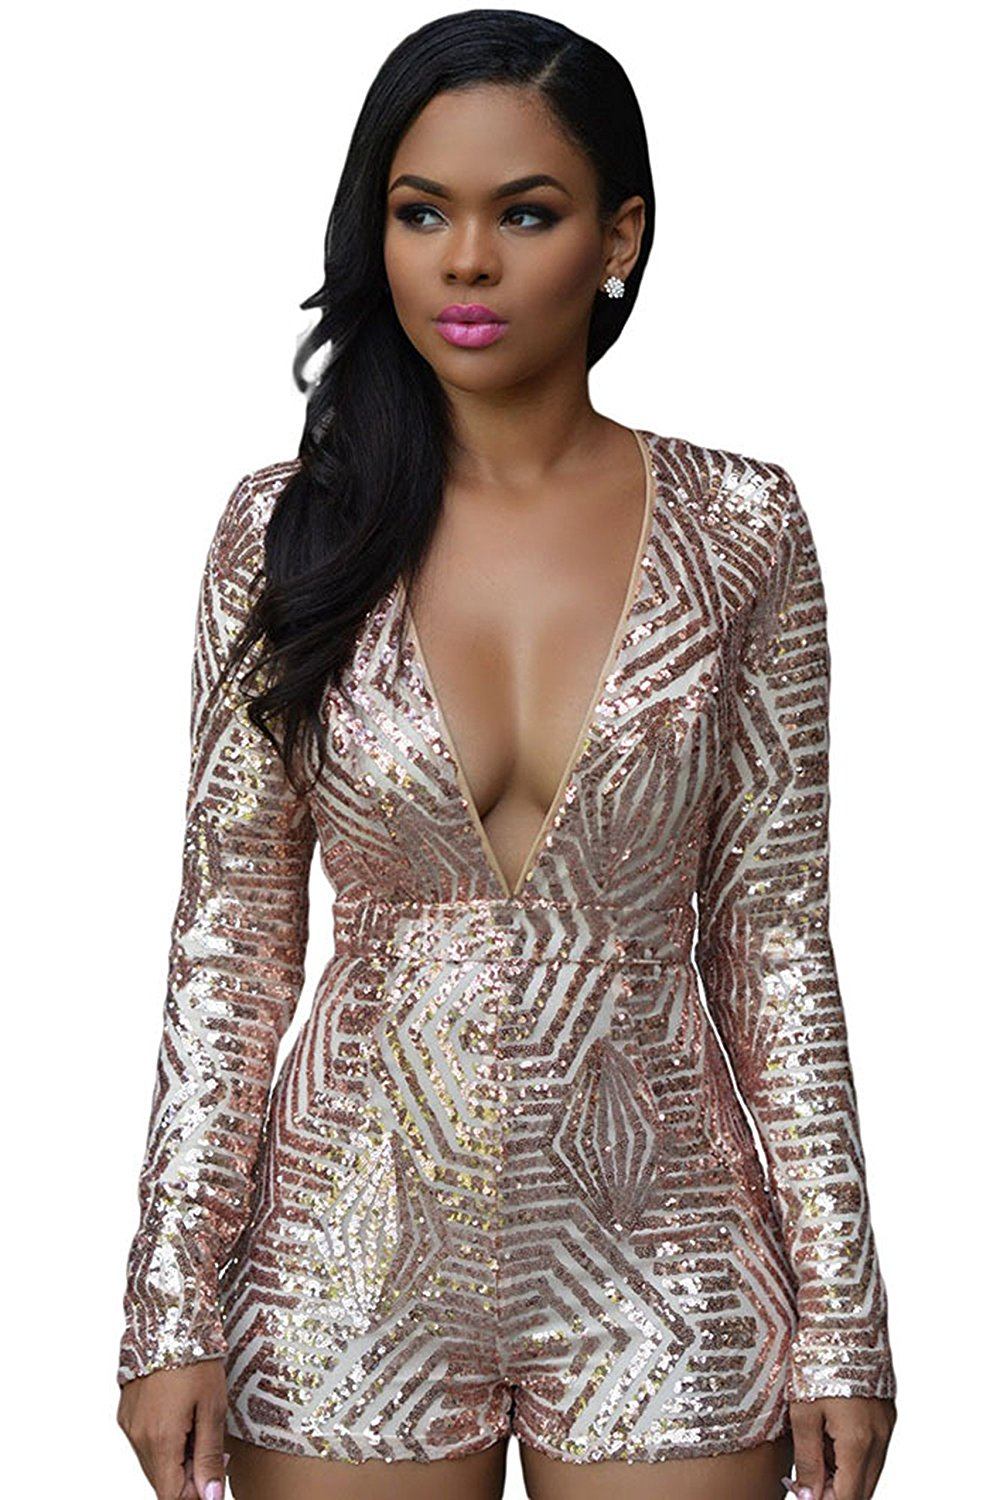 593ecfcf6844 Get Quotations · Women Sexy Long Sleeve Backless Deep V Neck Sequin Bodycon Shorts  Jumpsuit Romper